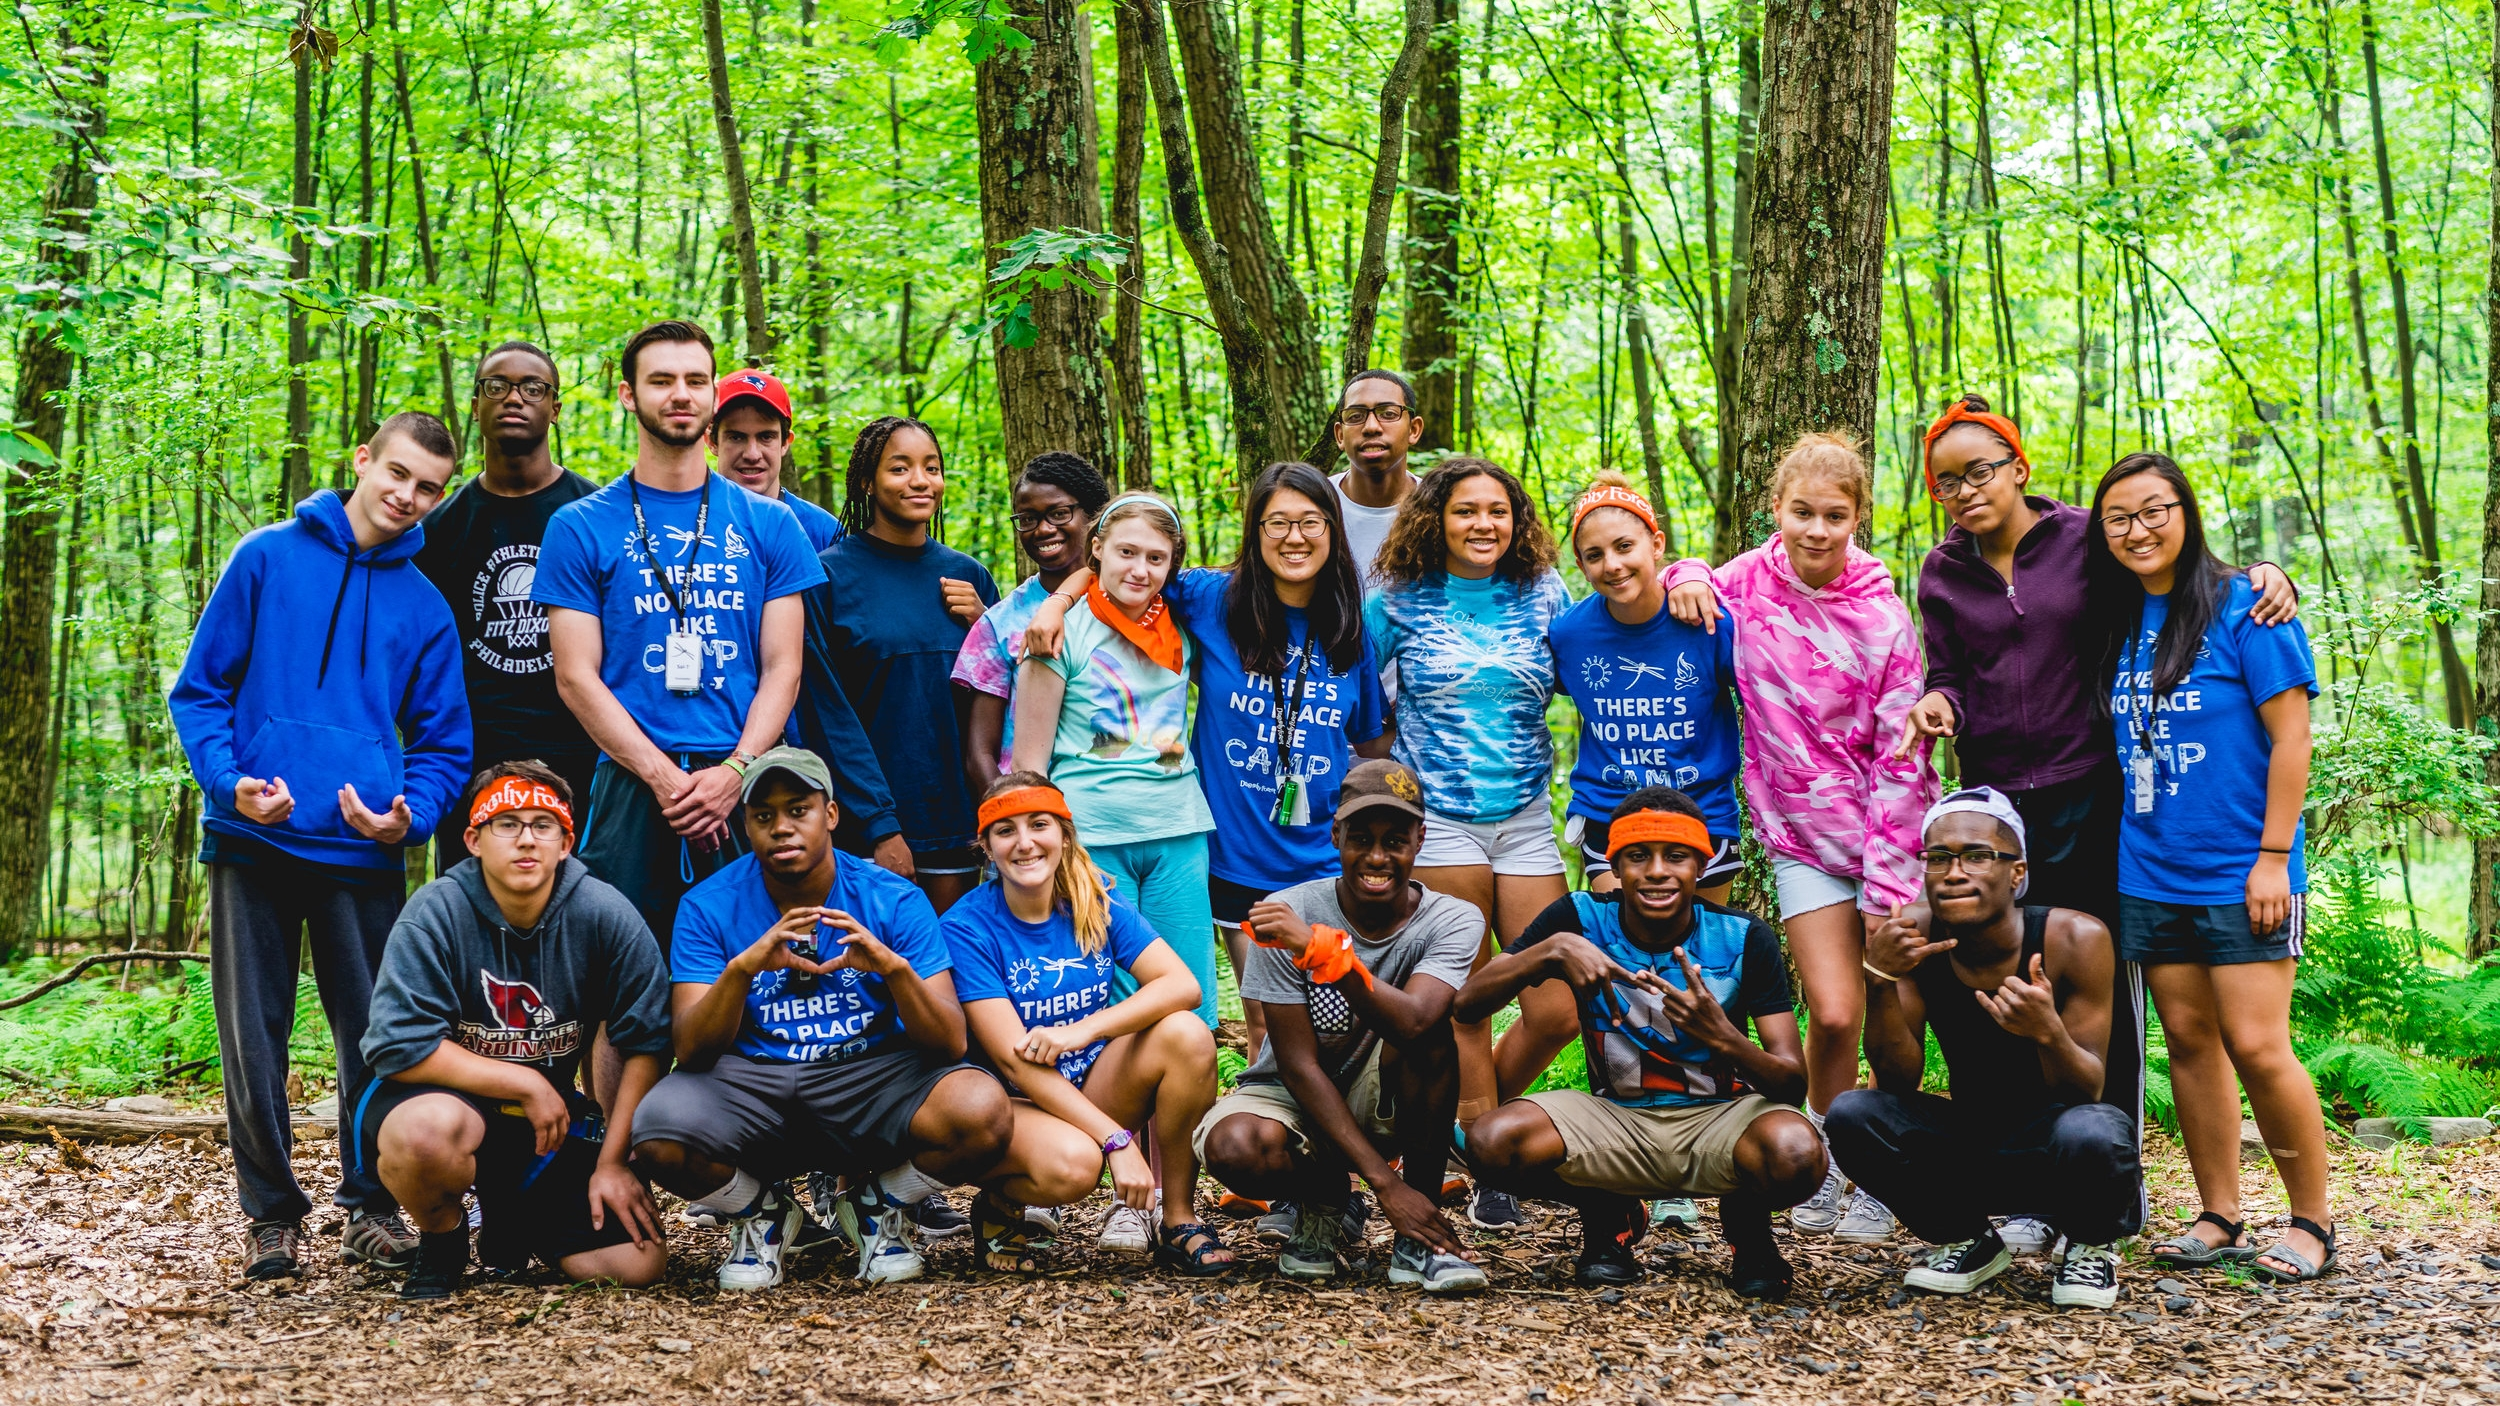 Teen Leadership Program - Sessions 4 & 5Ages: 15-16$975 per camper (financial aid is available)